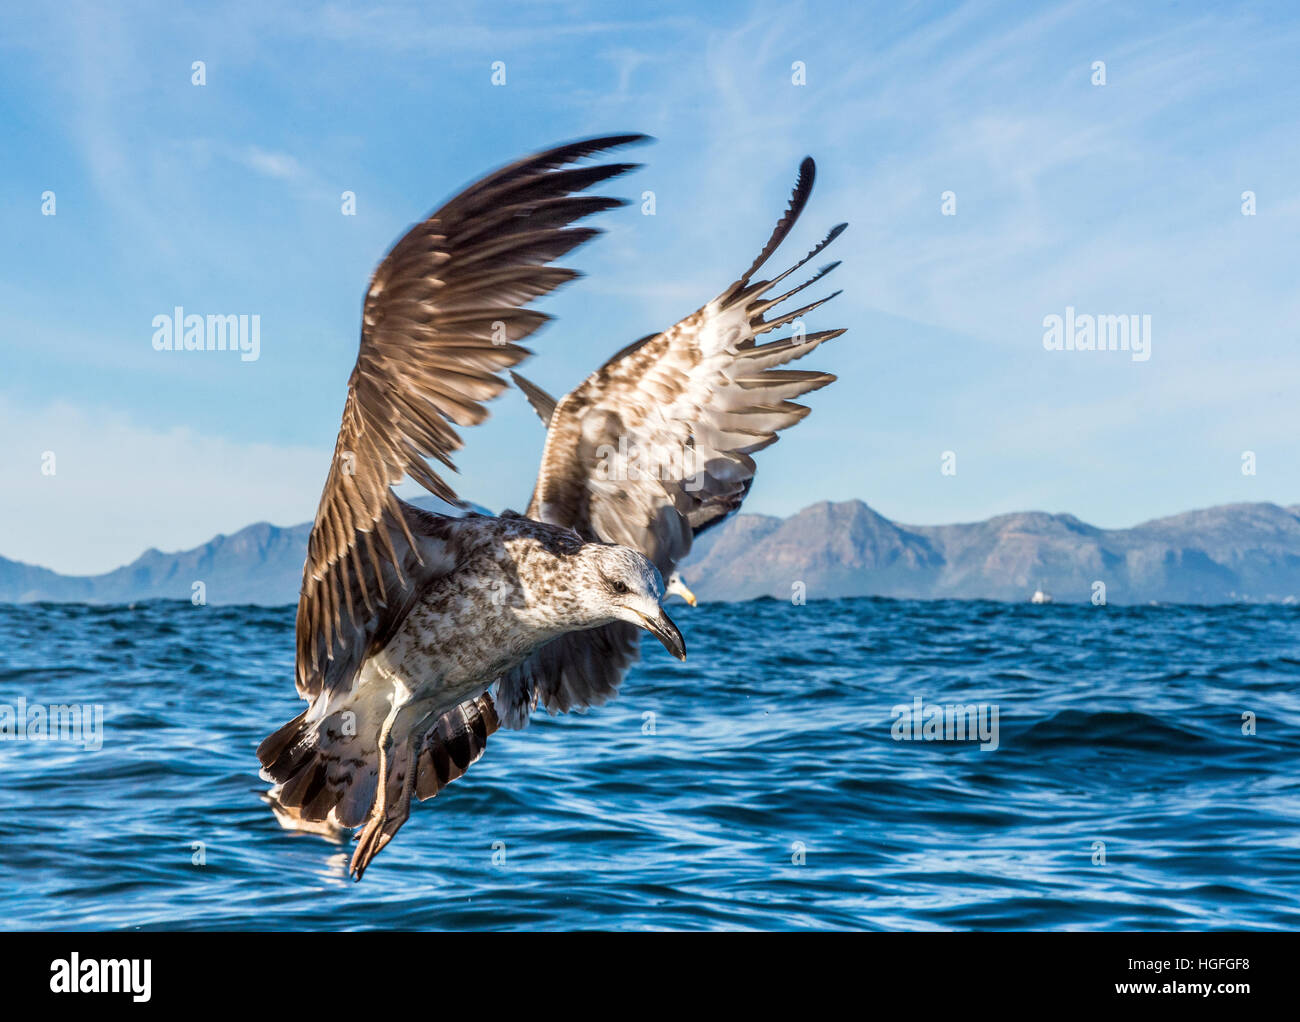 Flying Juvenile Kelp gull (Larus dominicanus), also known as the Dominican gull and Black Backed Kelp Gull. Natural - Stock Image